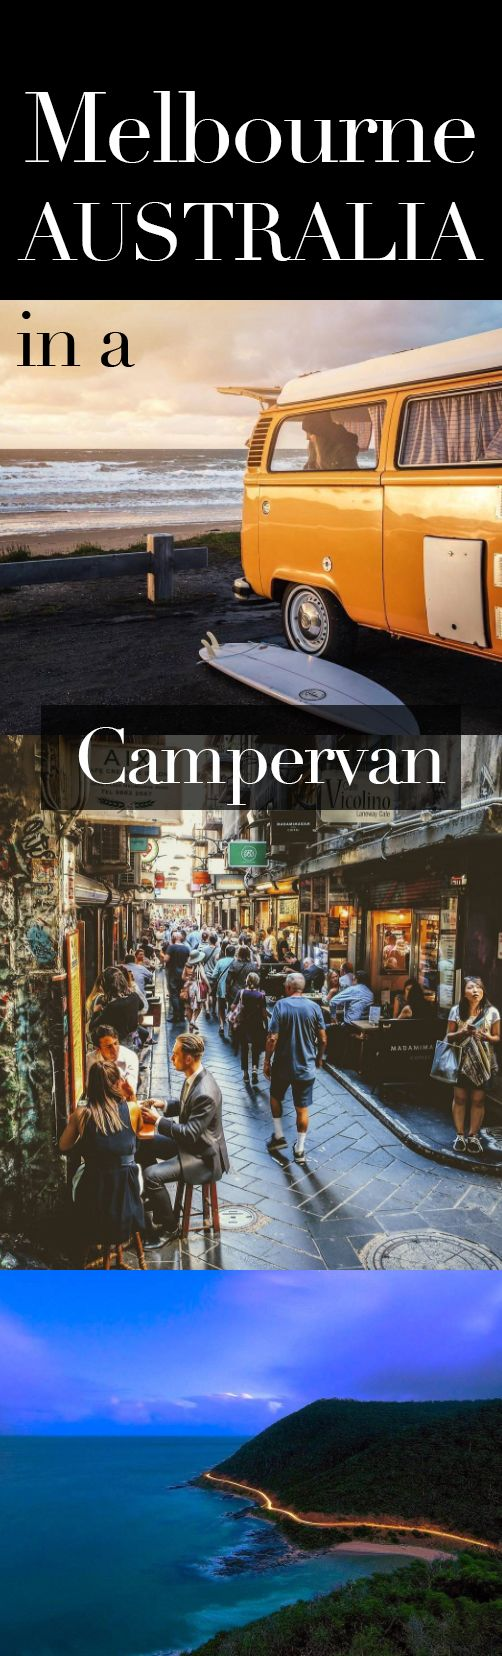 Melbourne is a great place to start your australian road trip camperman s campervan hire melbourne gives all inclusive pricing and has drop off locations